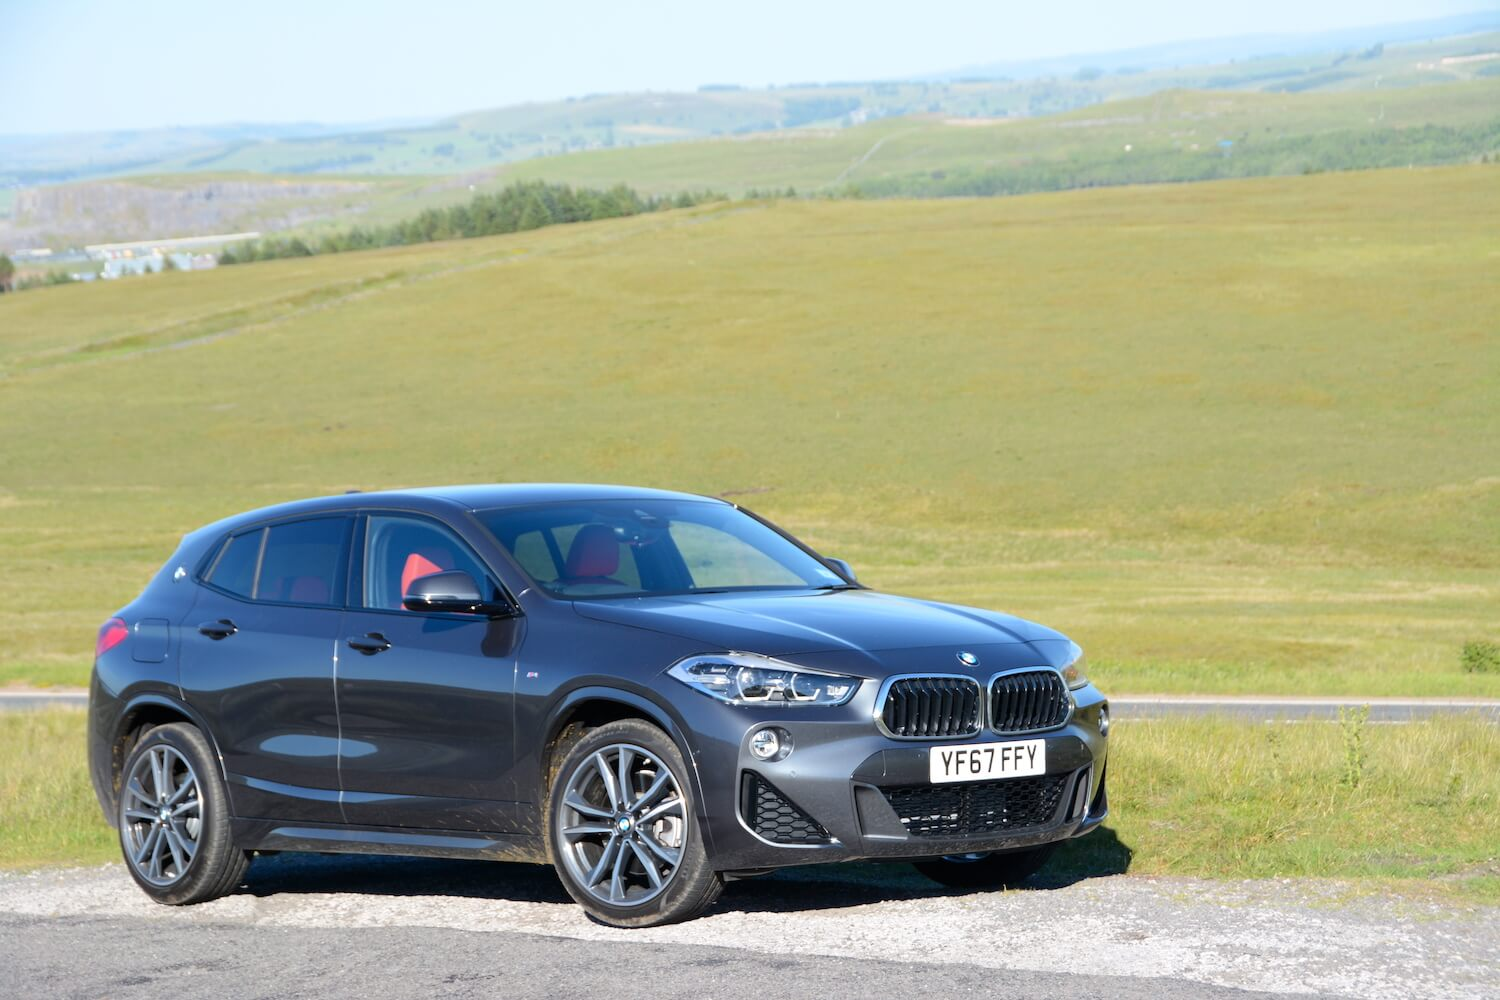 Bmw Xdrive System Review >> BMW X2 xDrive20d M Sport Review - GreenCarGuide.co.uk